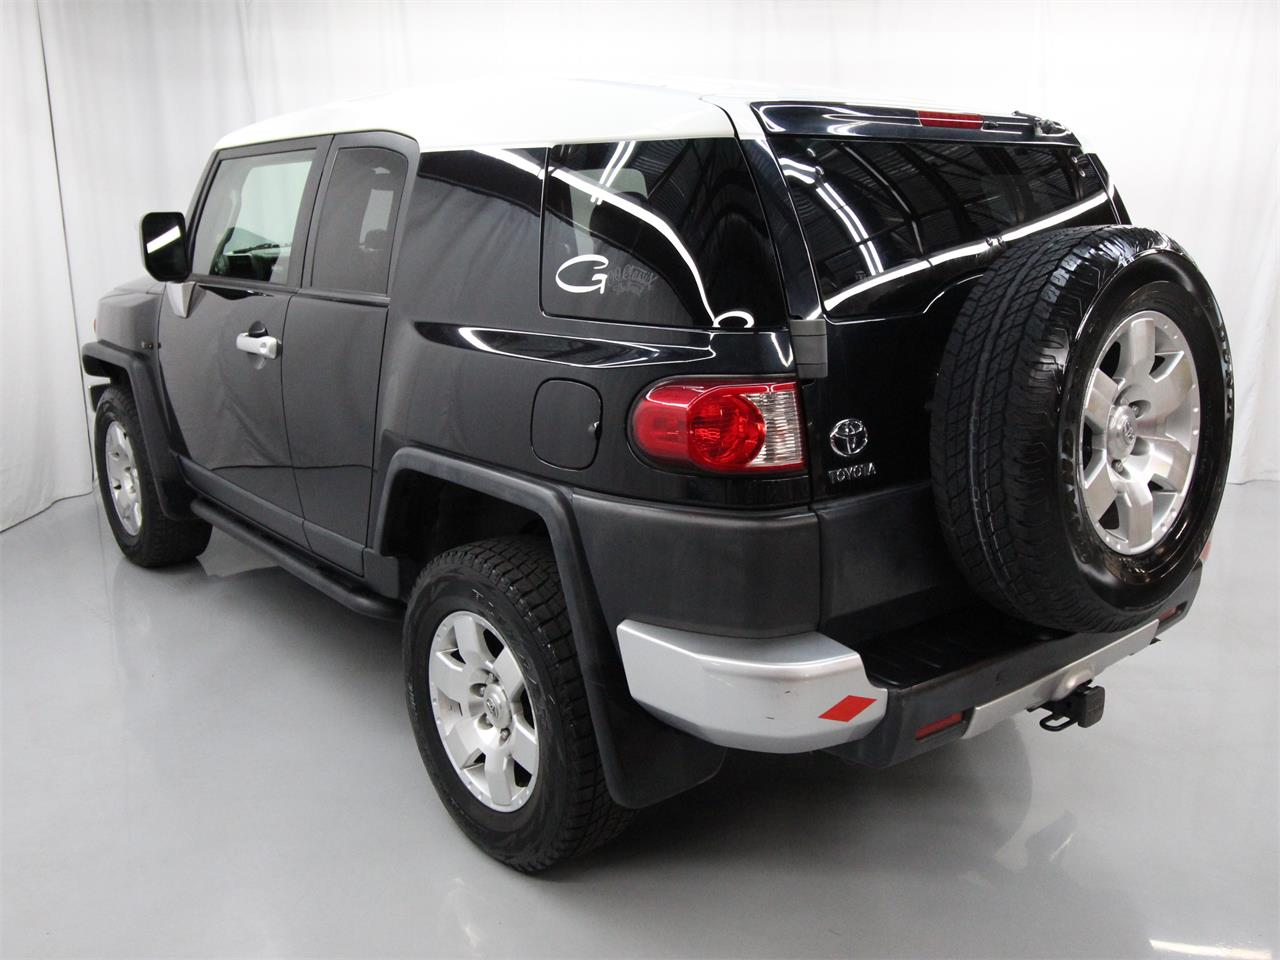 Large Picture of 2007 FJ Cruiser - $21,780.00 - Q53G